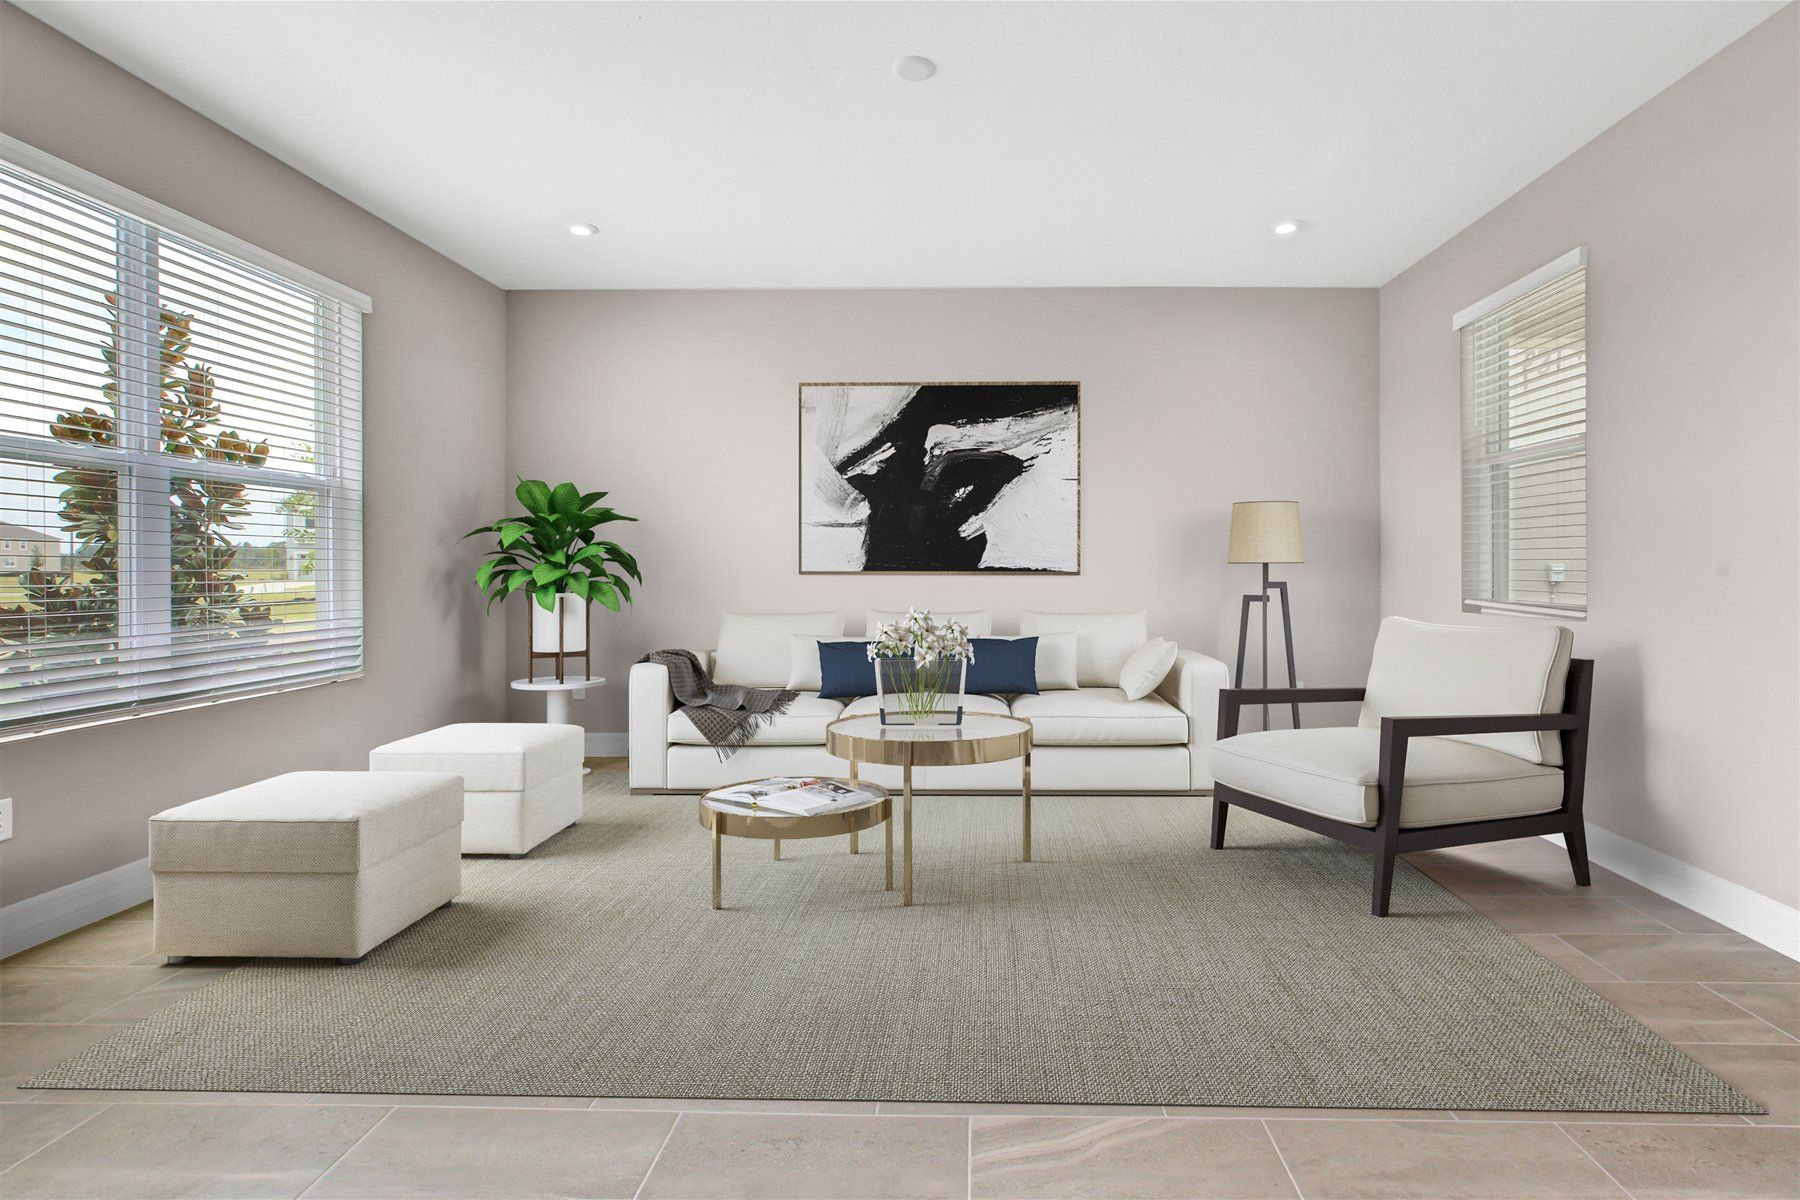 Living Area featured in the Belmont By Mattamy Homes in Orlando, FL